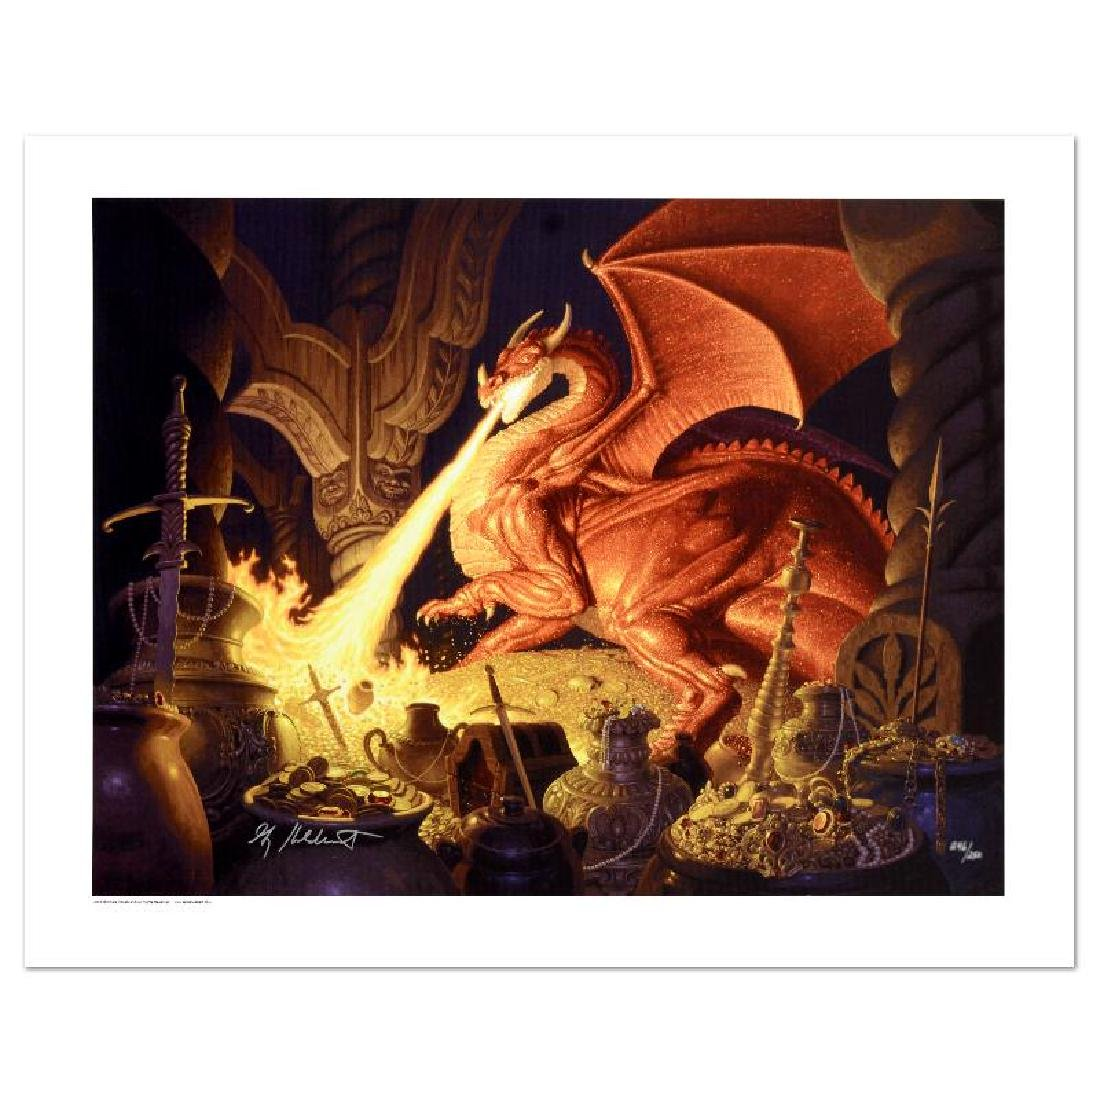 """Smaug"" Limited Edition Giclee on Canvas by The"